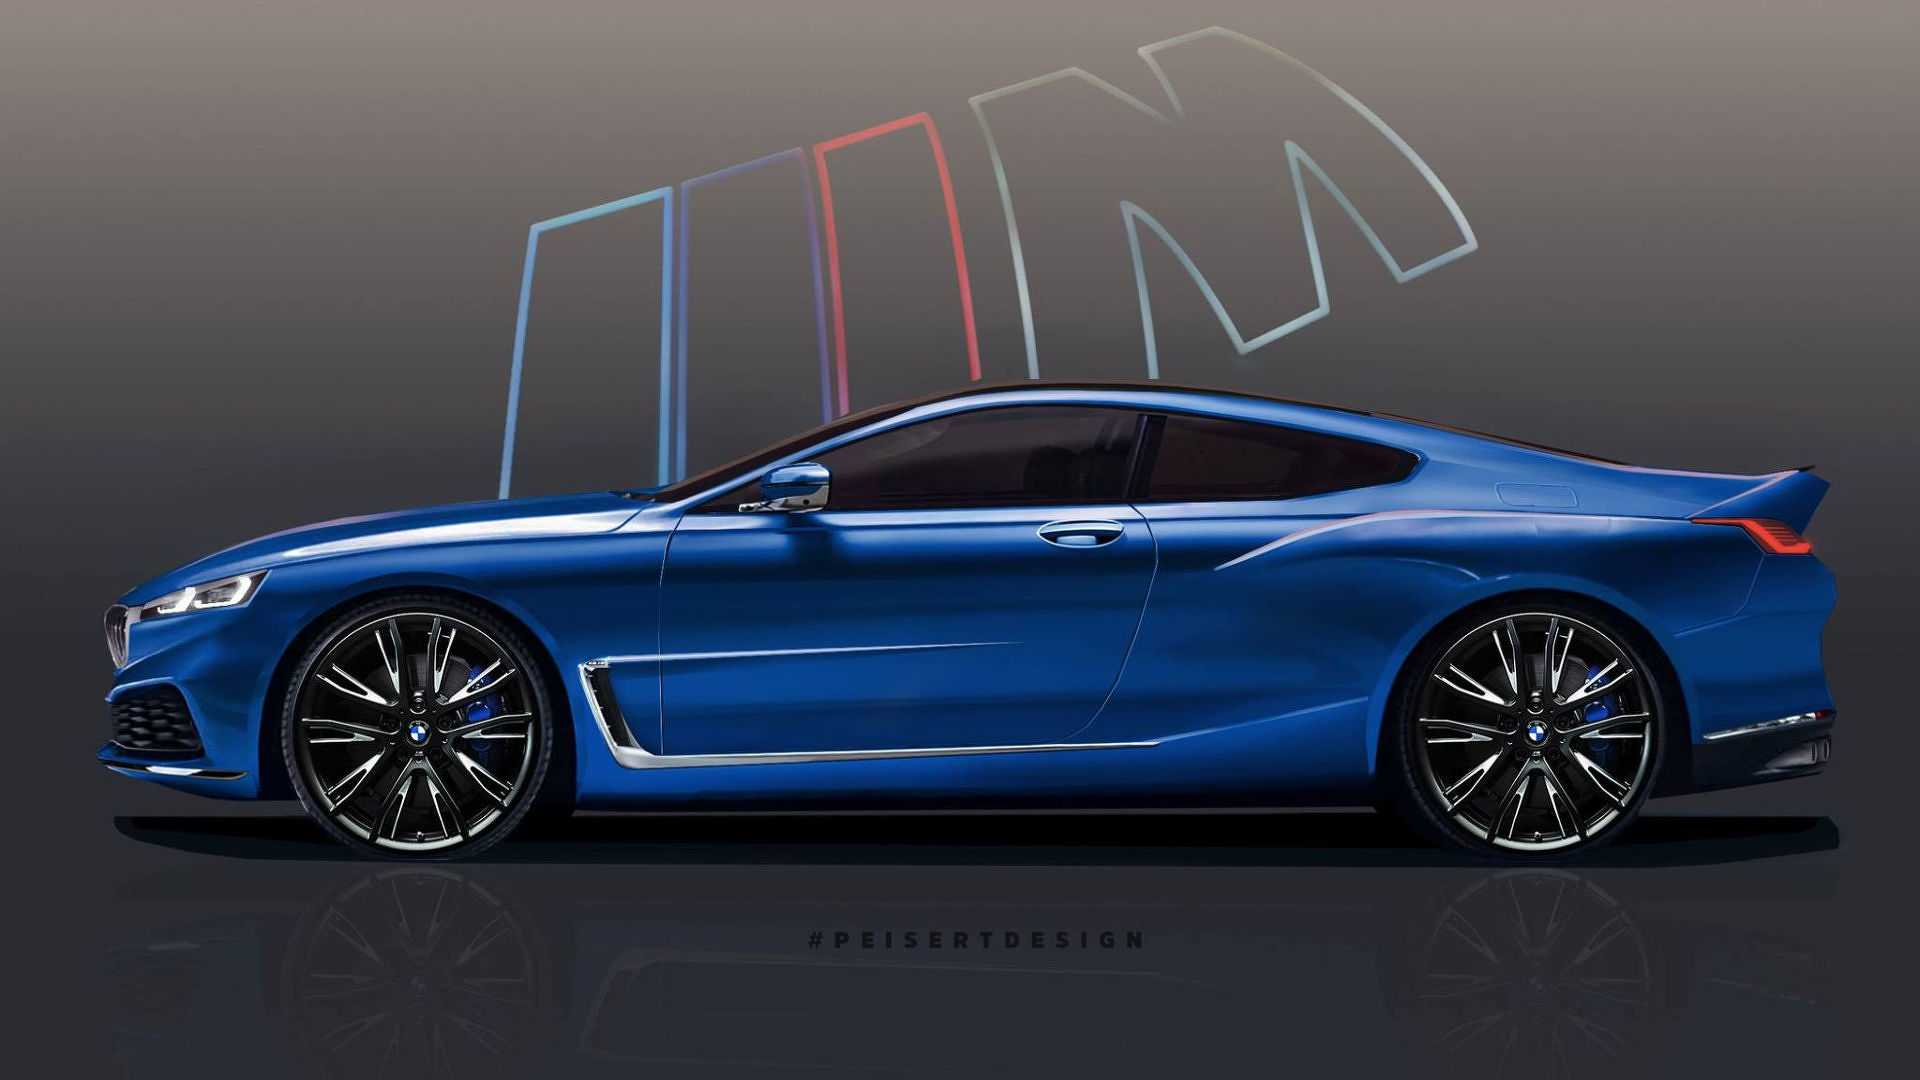 42 Best Review 2020 BMW M8 Images by 2020 BMW M8